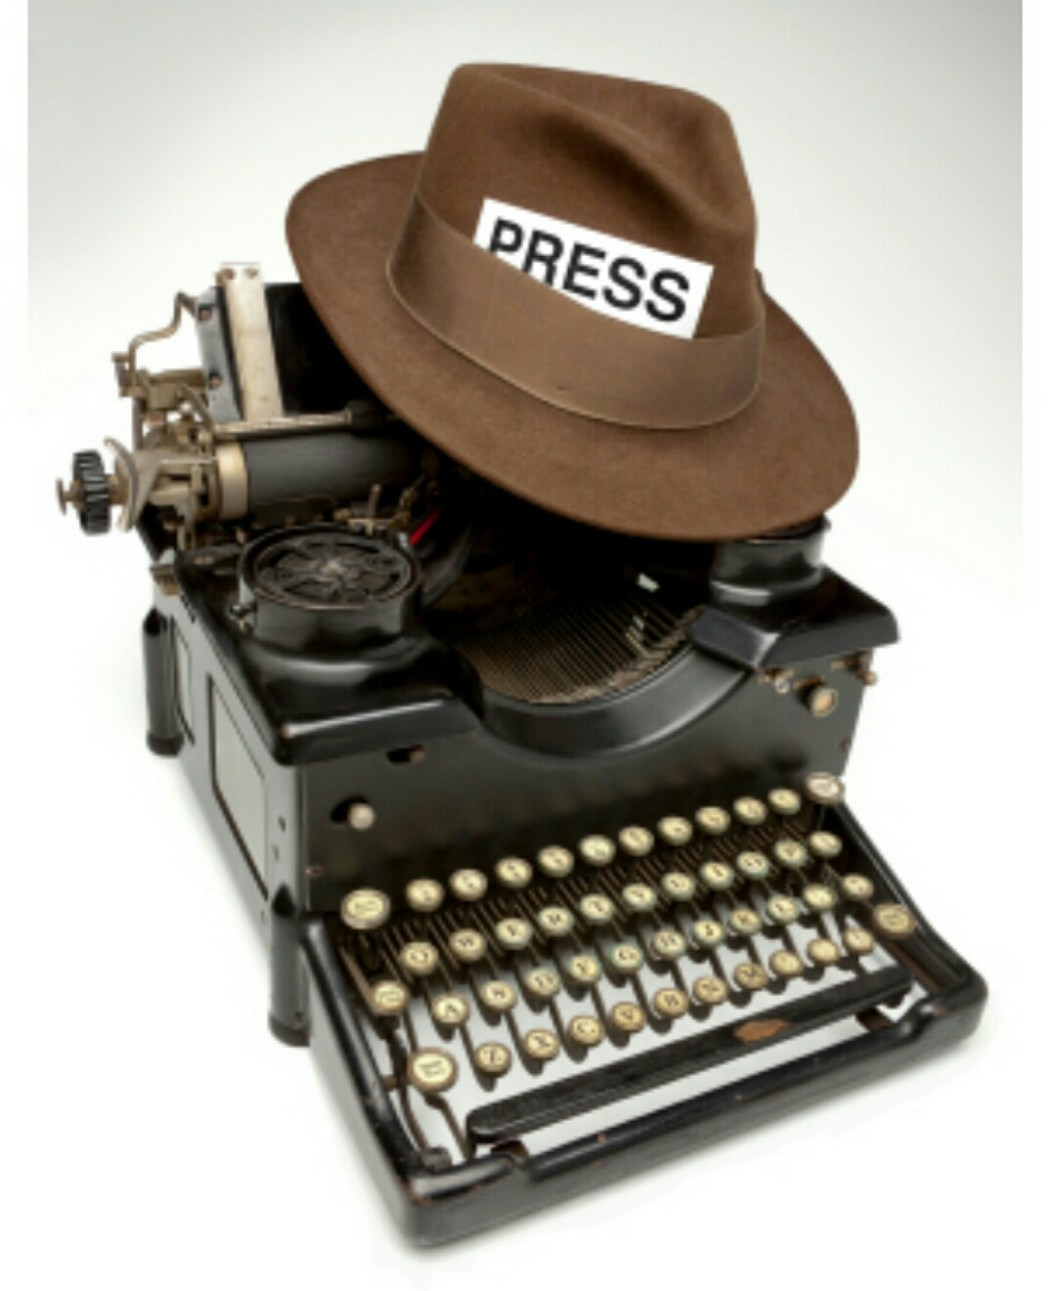 Now you can send a press release on behalf of your company for less than you think!